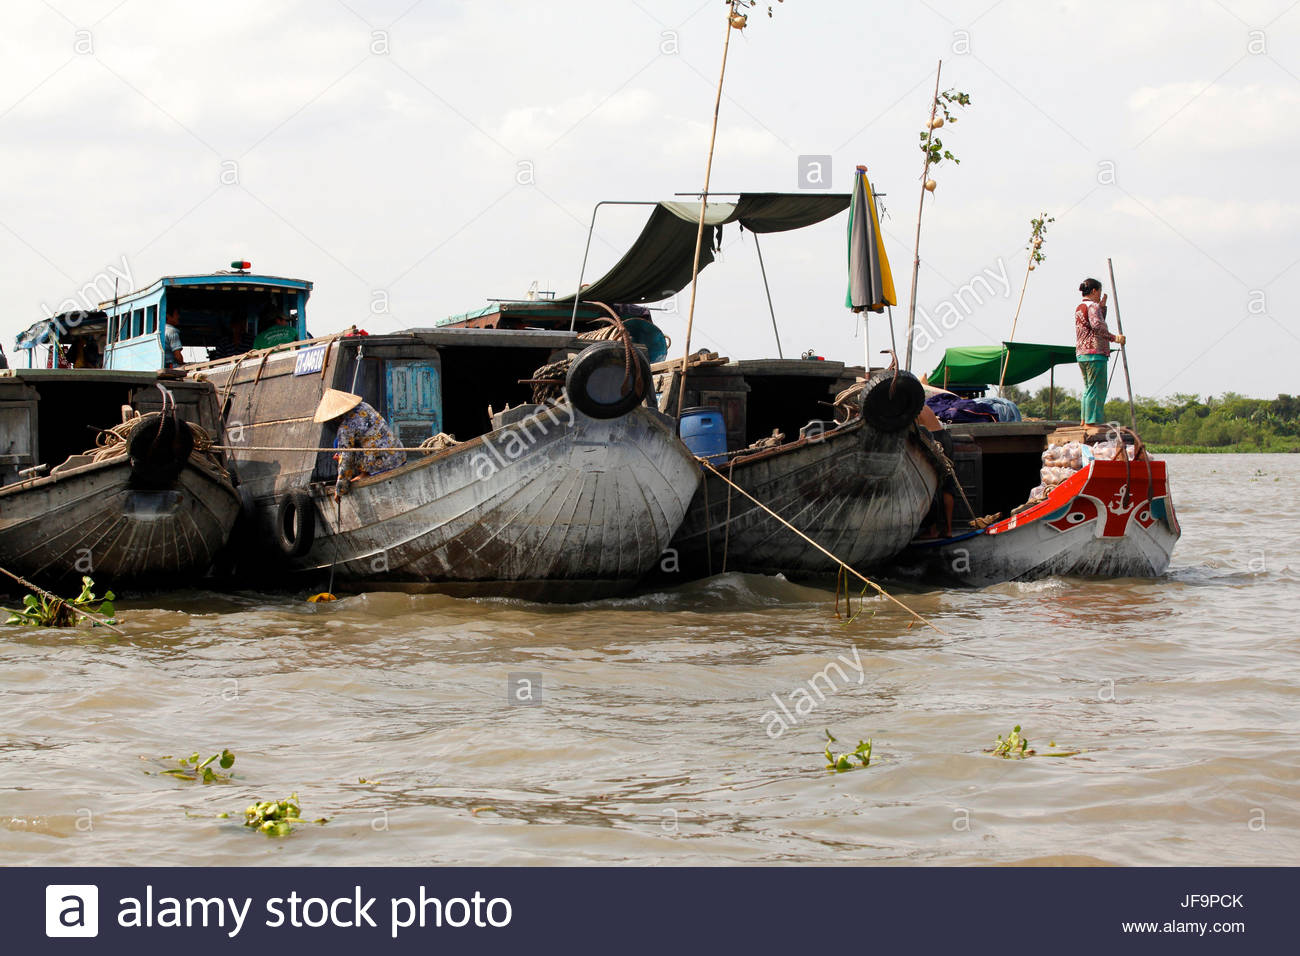 A woman stands on a boat in the Mekong River Delta. - Stock Image